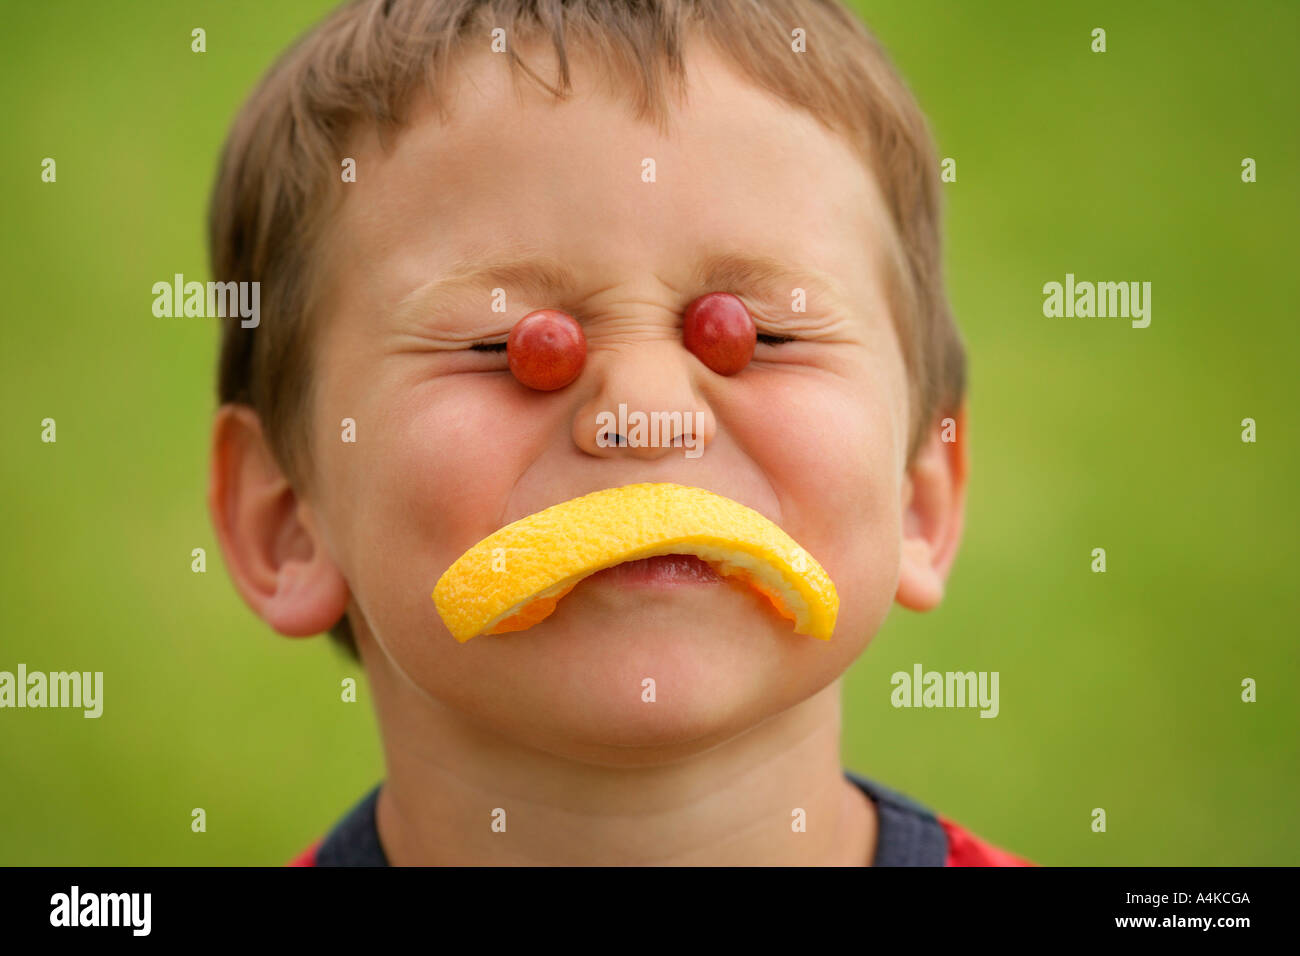 A fruity face - Stock Image